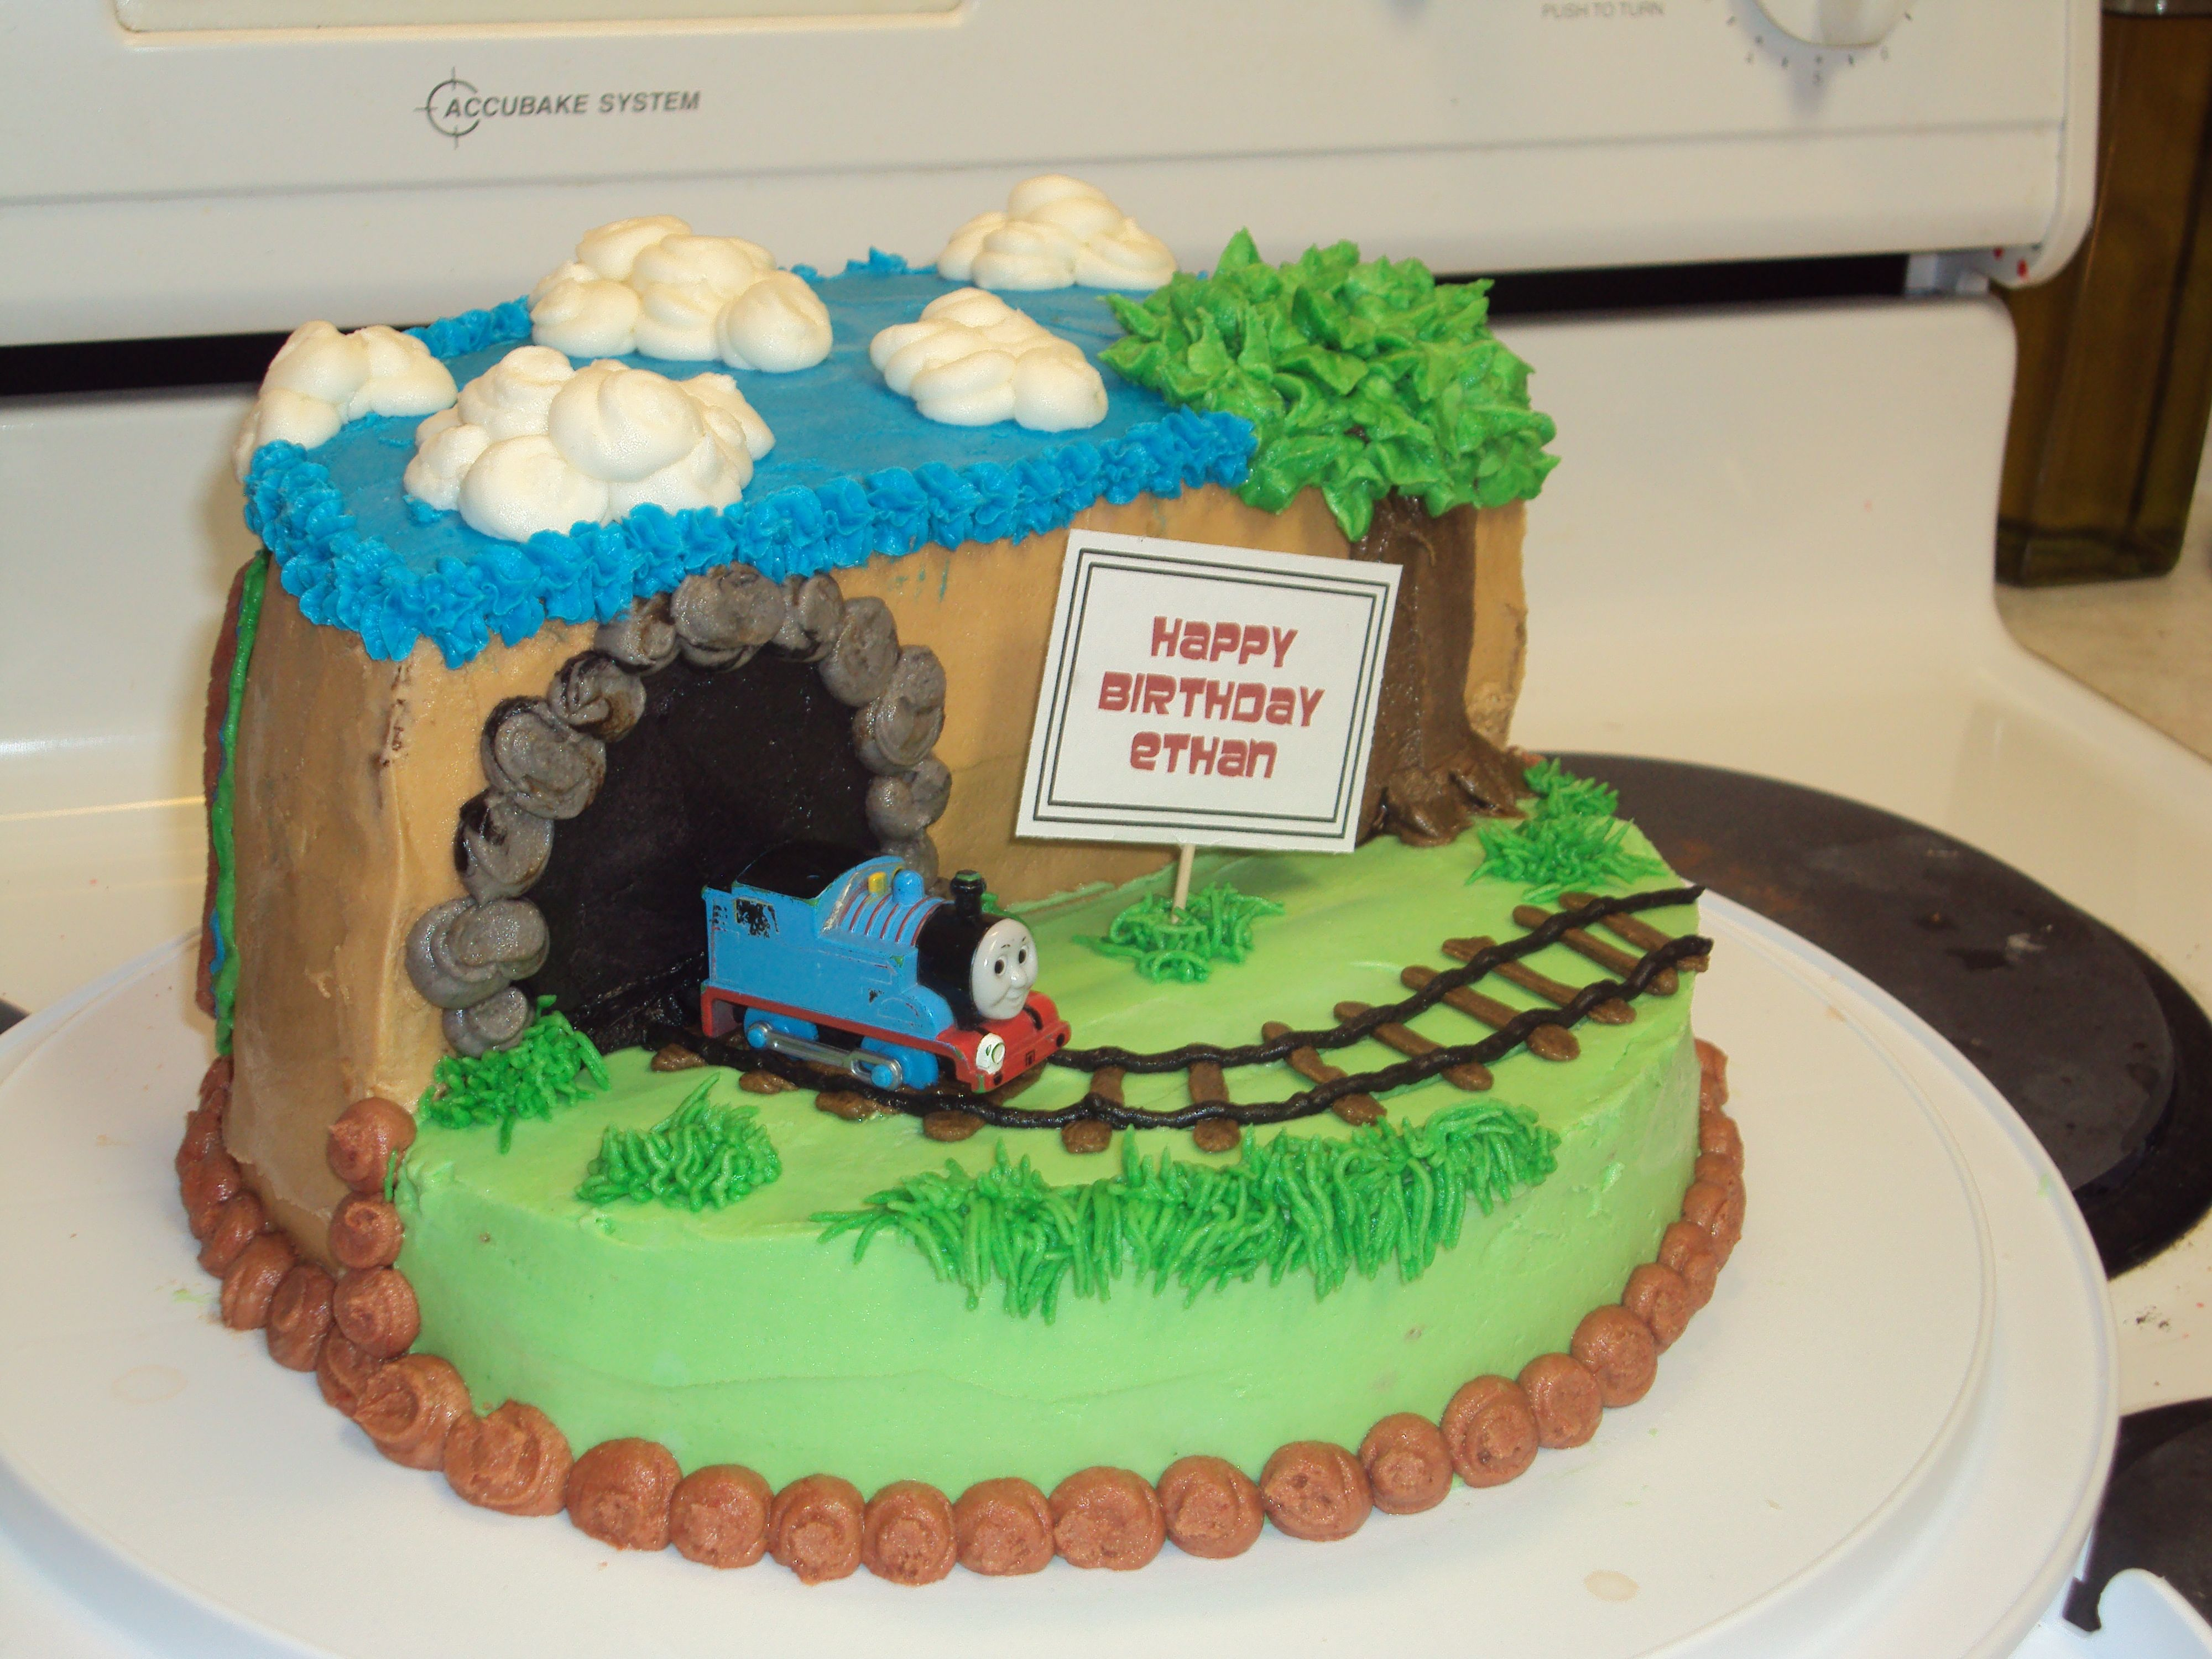 Thomas The Train Birthday Cake Pretty Easy To Make With 2 8in Rounds